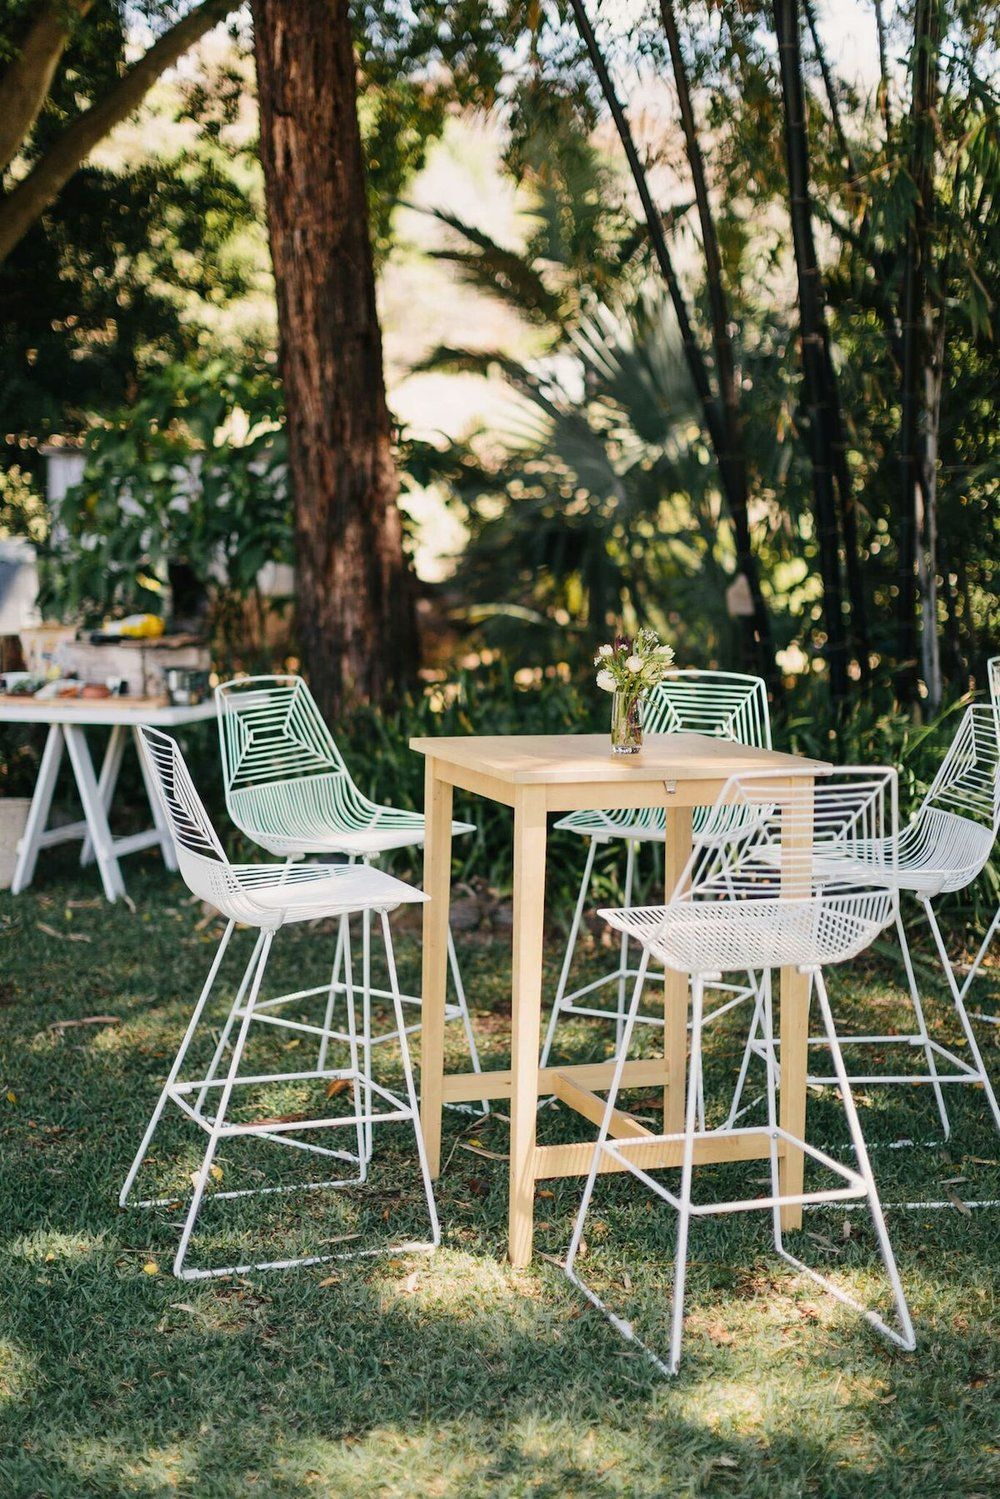 Wedding furniture hire checklists and planning tips with hampton event hire wedding and event hire on the gold coast brisbane and byron bay photo by